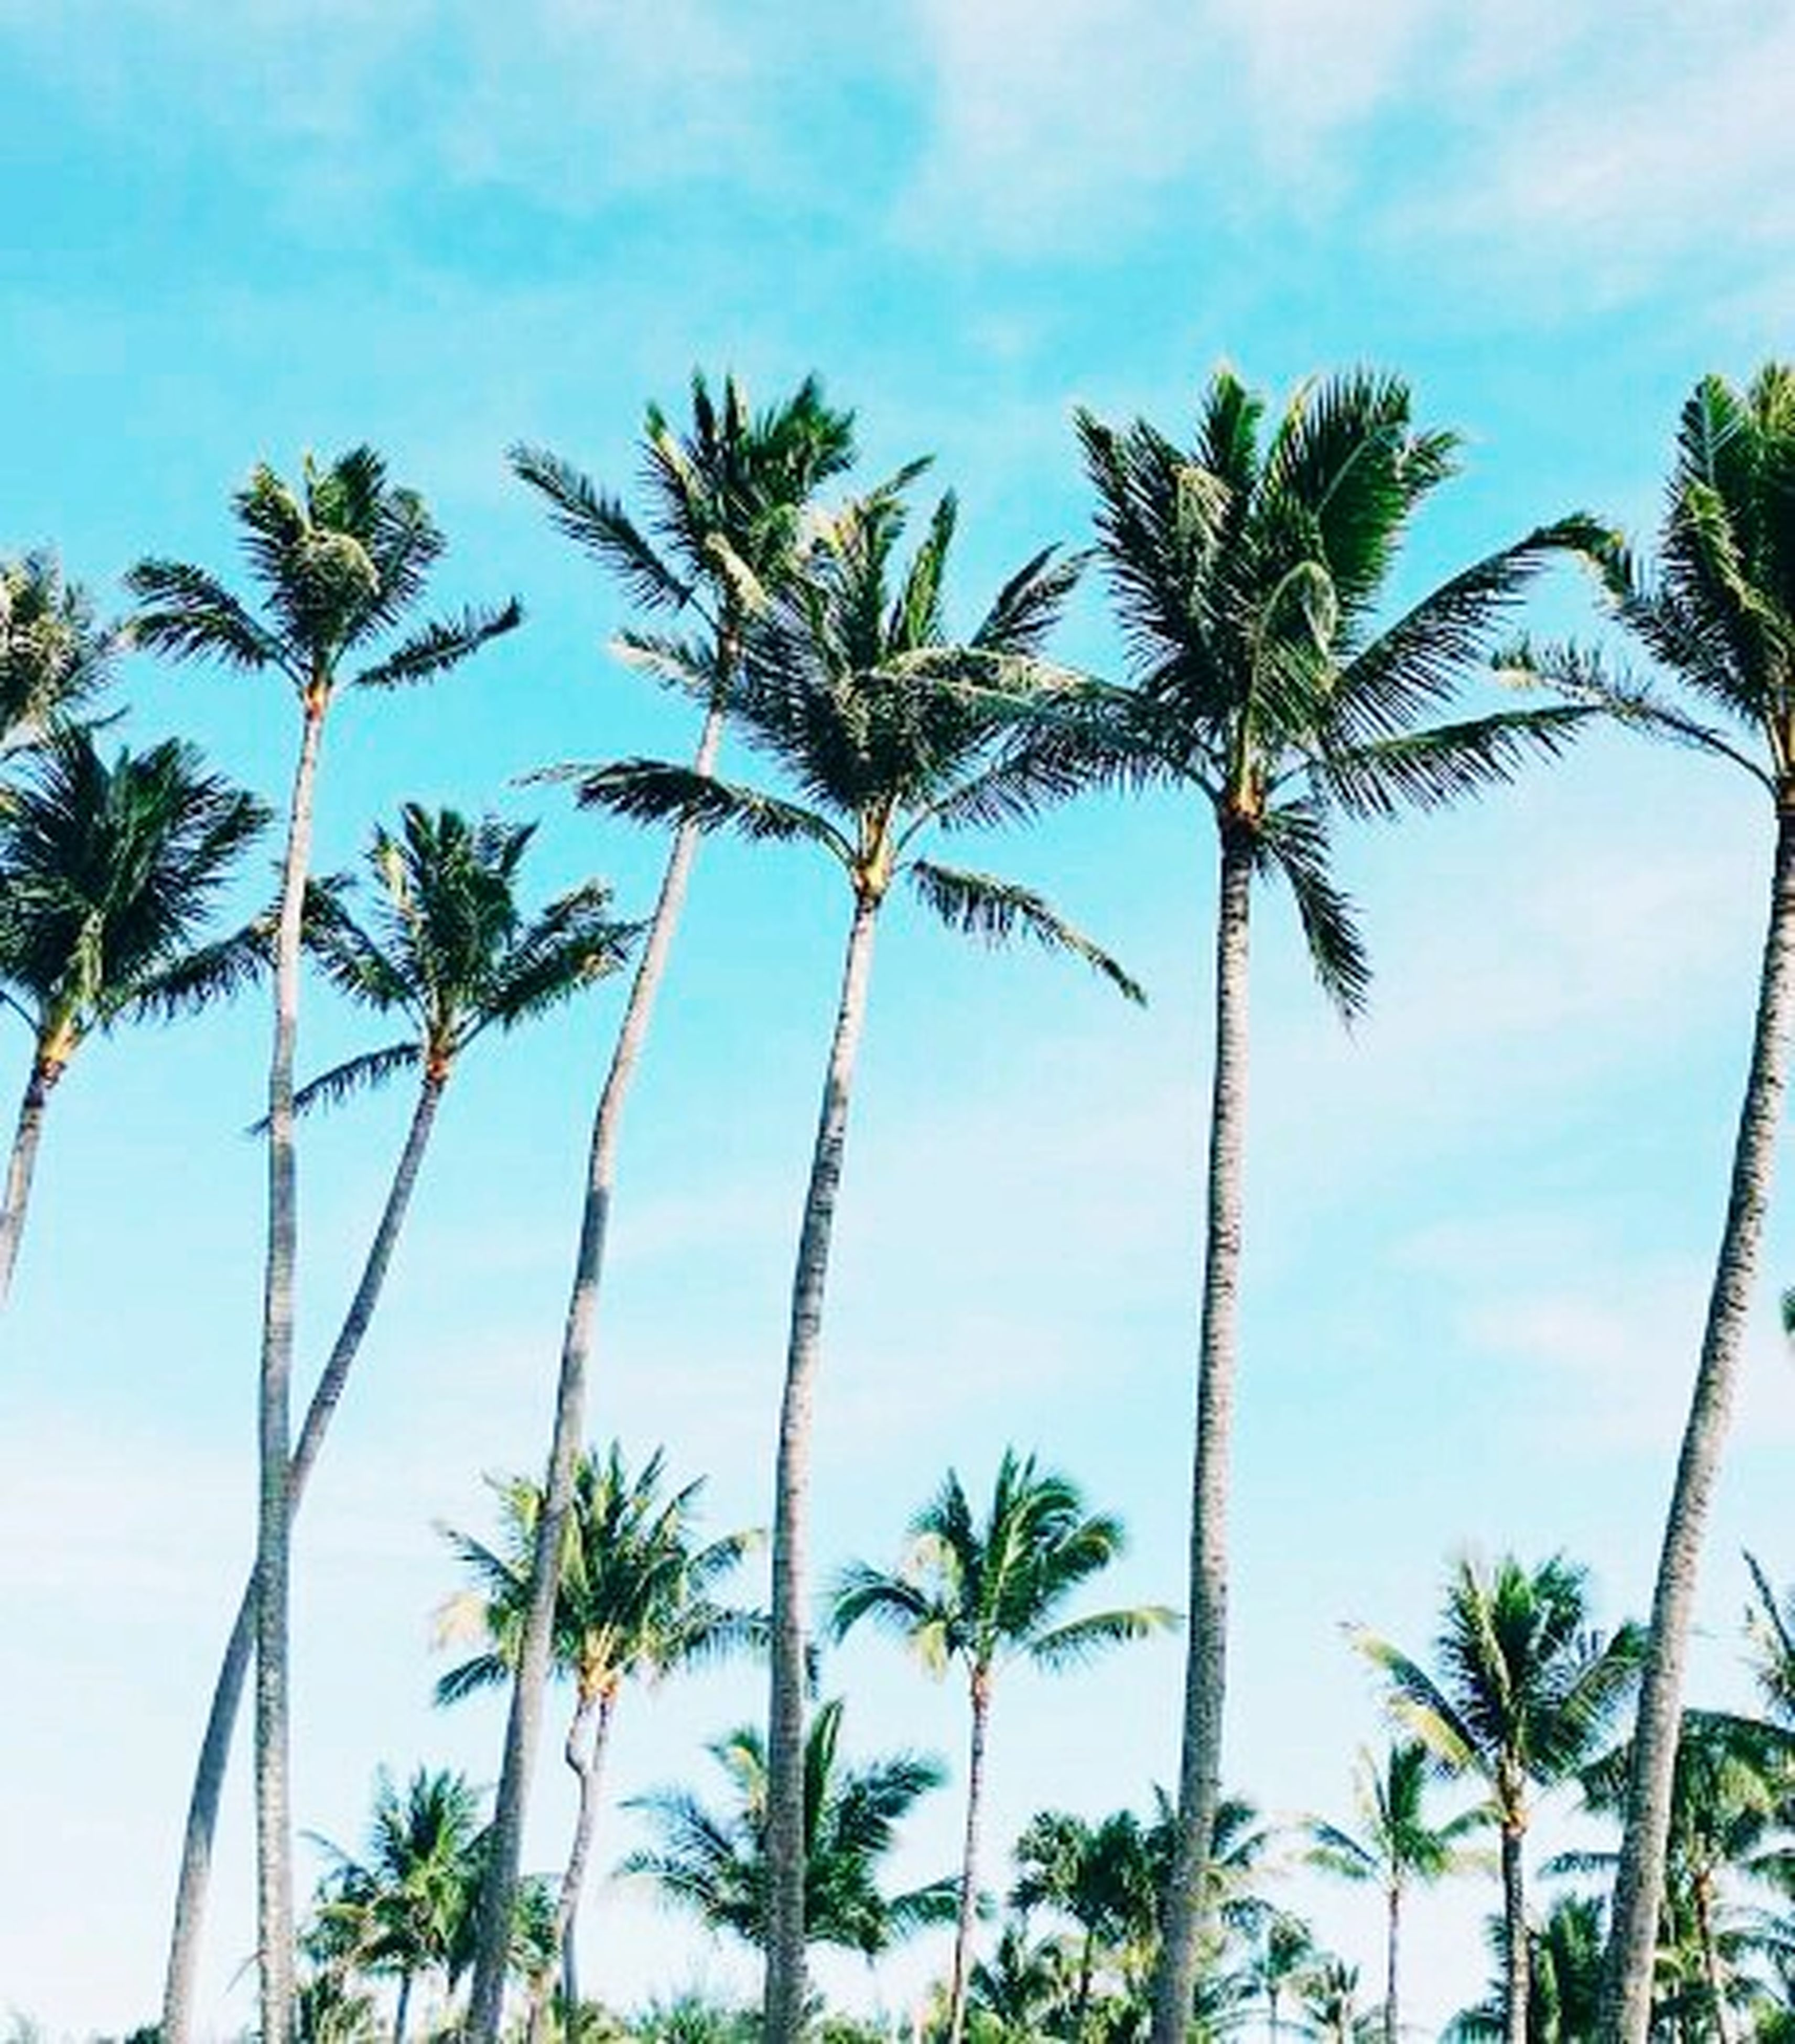 palm tree, tree, low angle view, sky, growth, coconut palm tree, tree trunk, cloud - sky, nature, cloud, blue, tranquility, beauty in nature, palm leaf, palm frond, tropical tree, tropical climate, tall - high, day, scenics